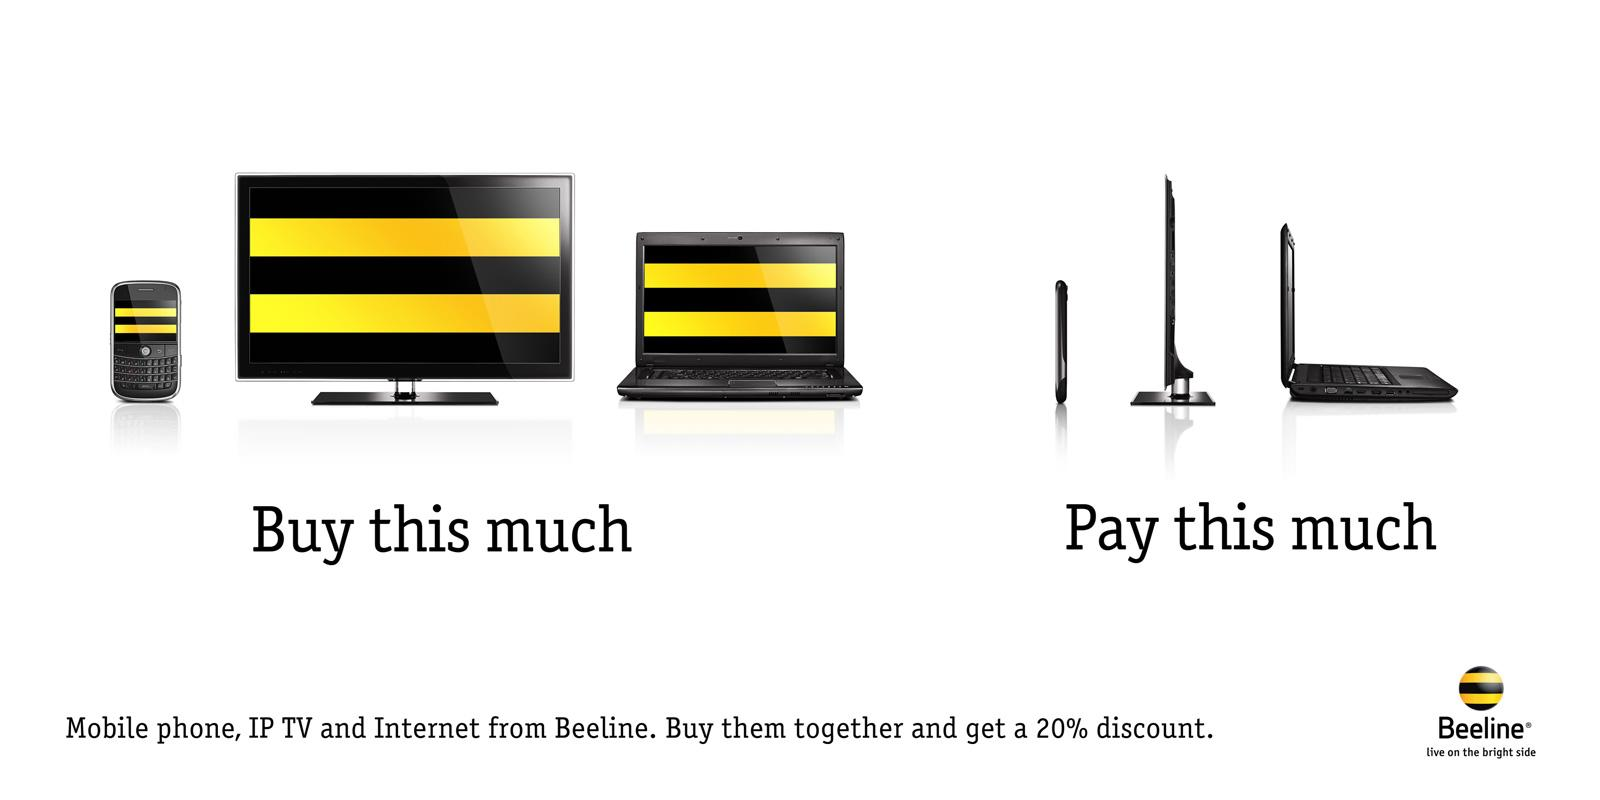 Beeline Outdoor Ad -  Buy More, Pay Less